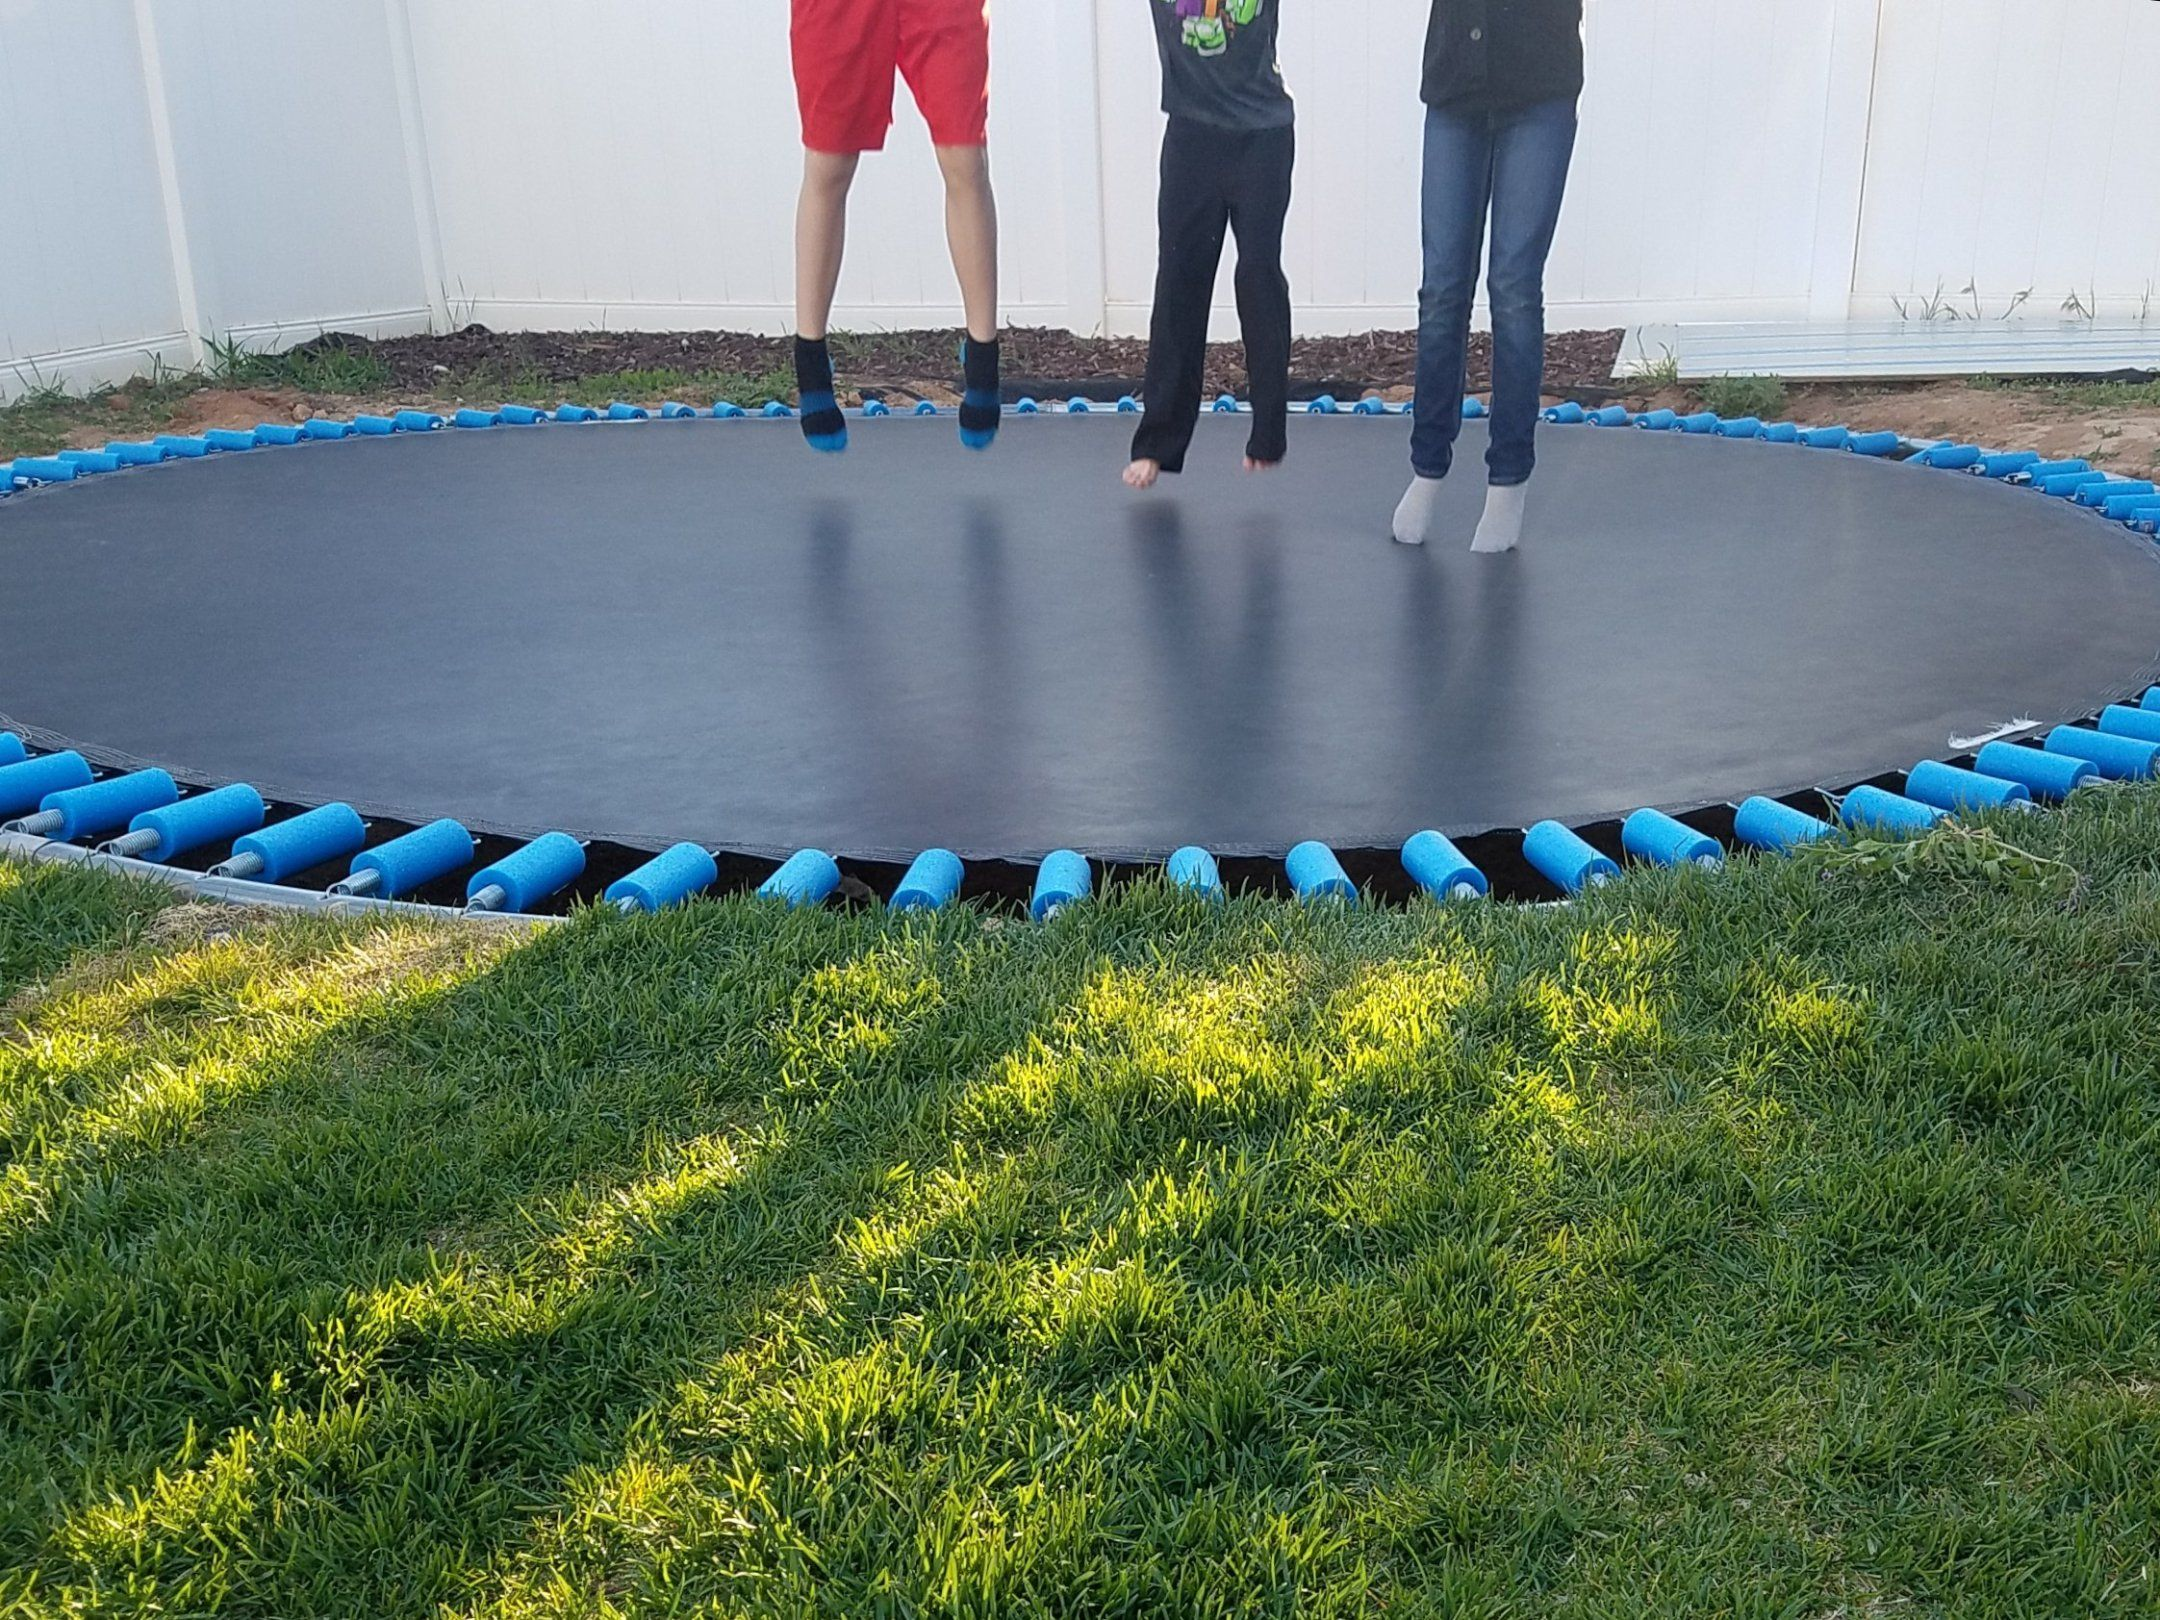 How to Make a Trampoline Pit for Under $100 - This ...